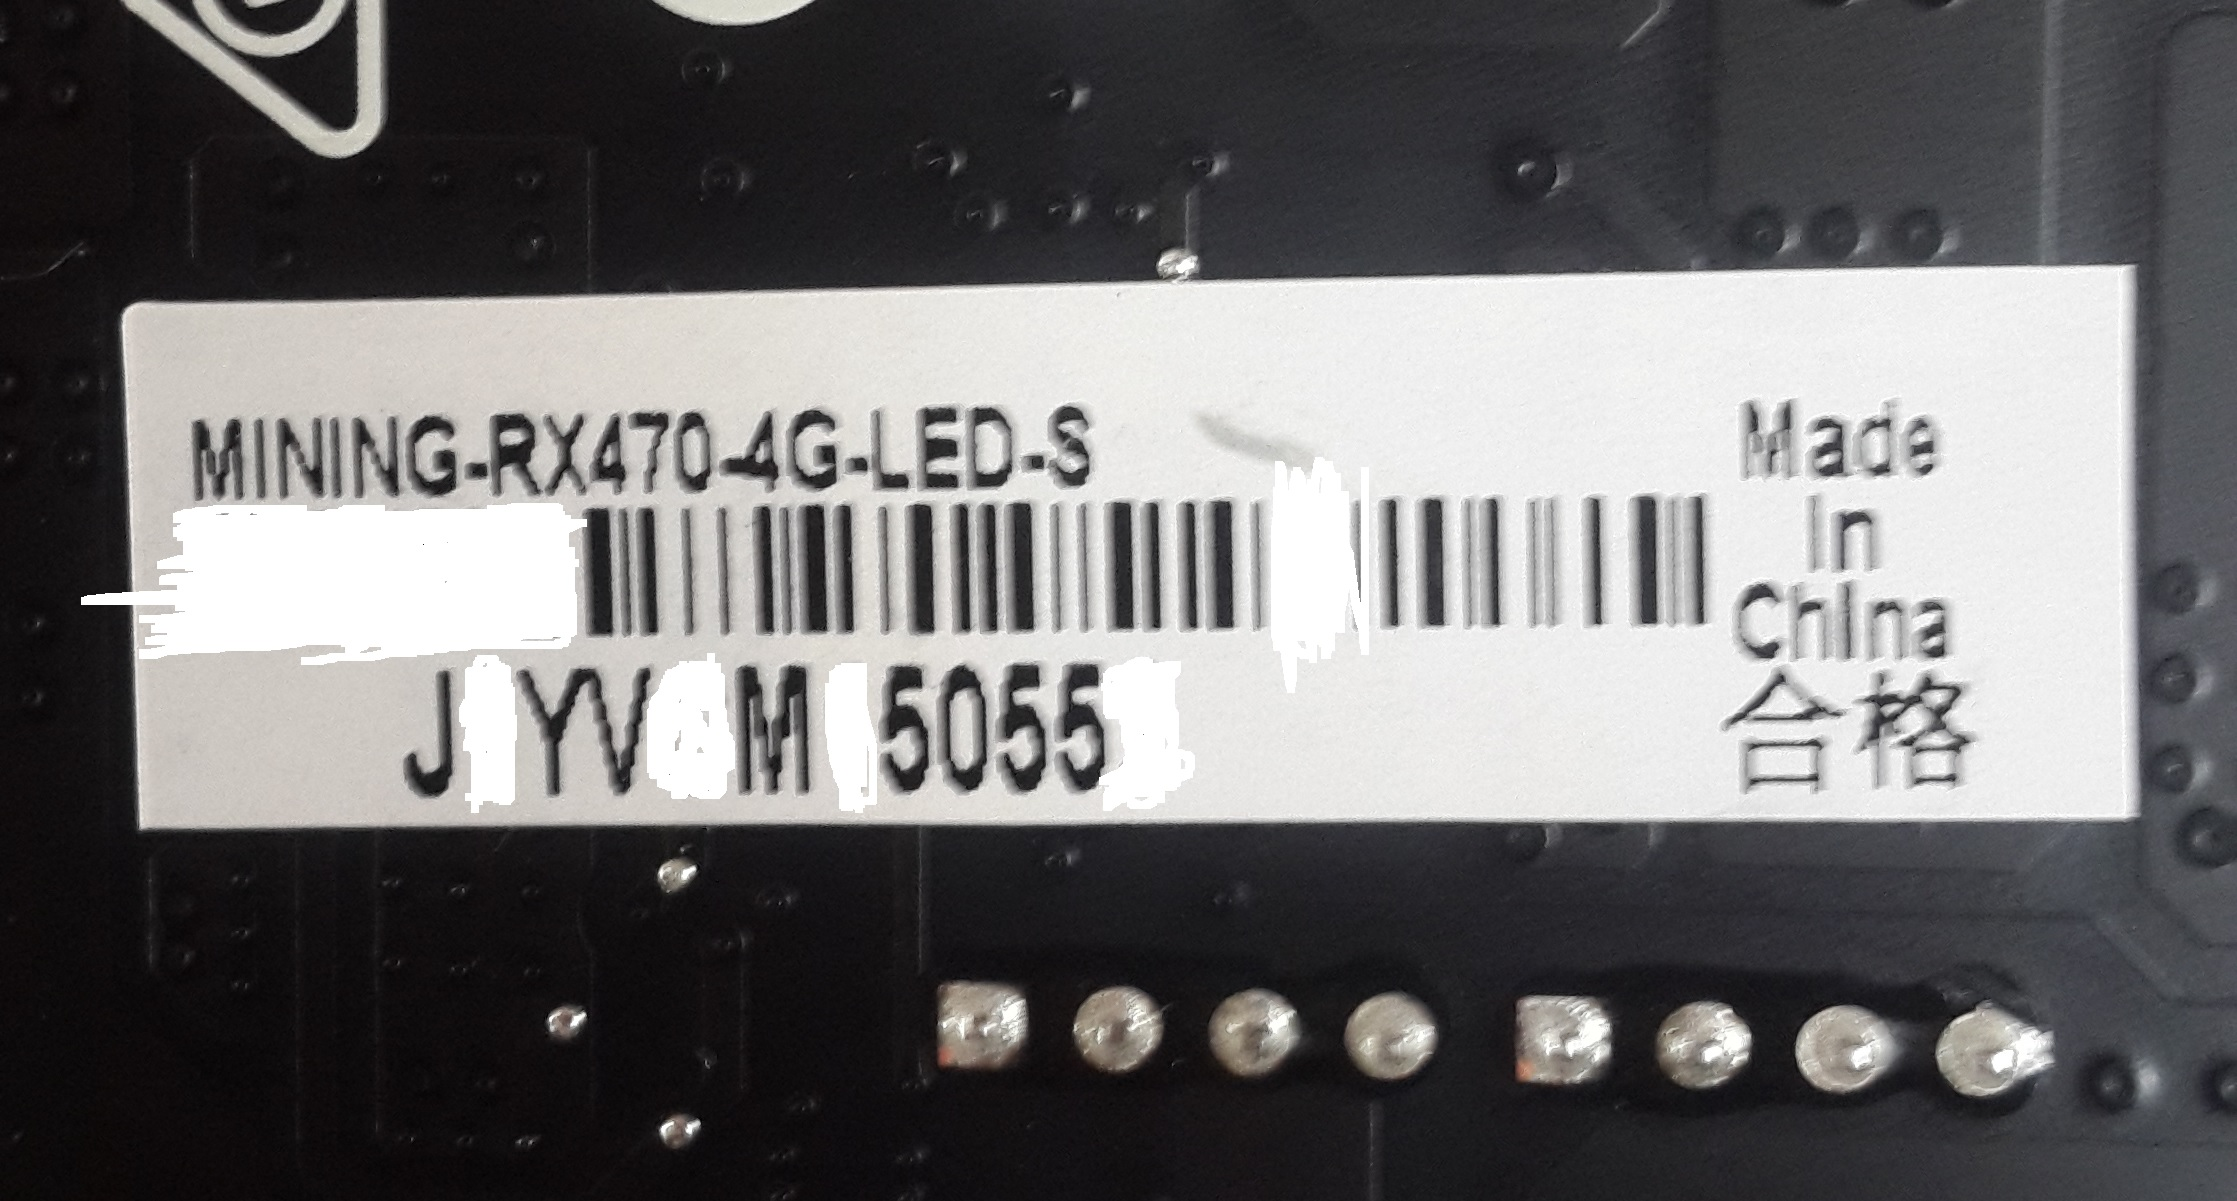 Asus Mining RX470 4GB BIOS could not be found